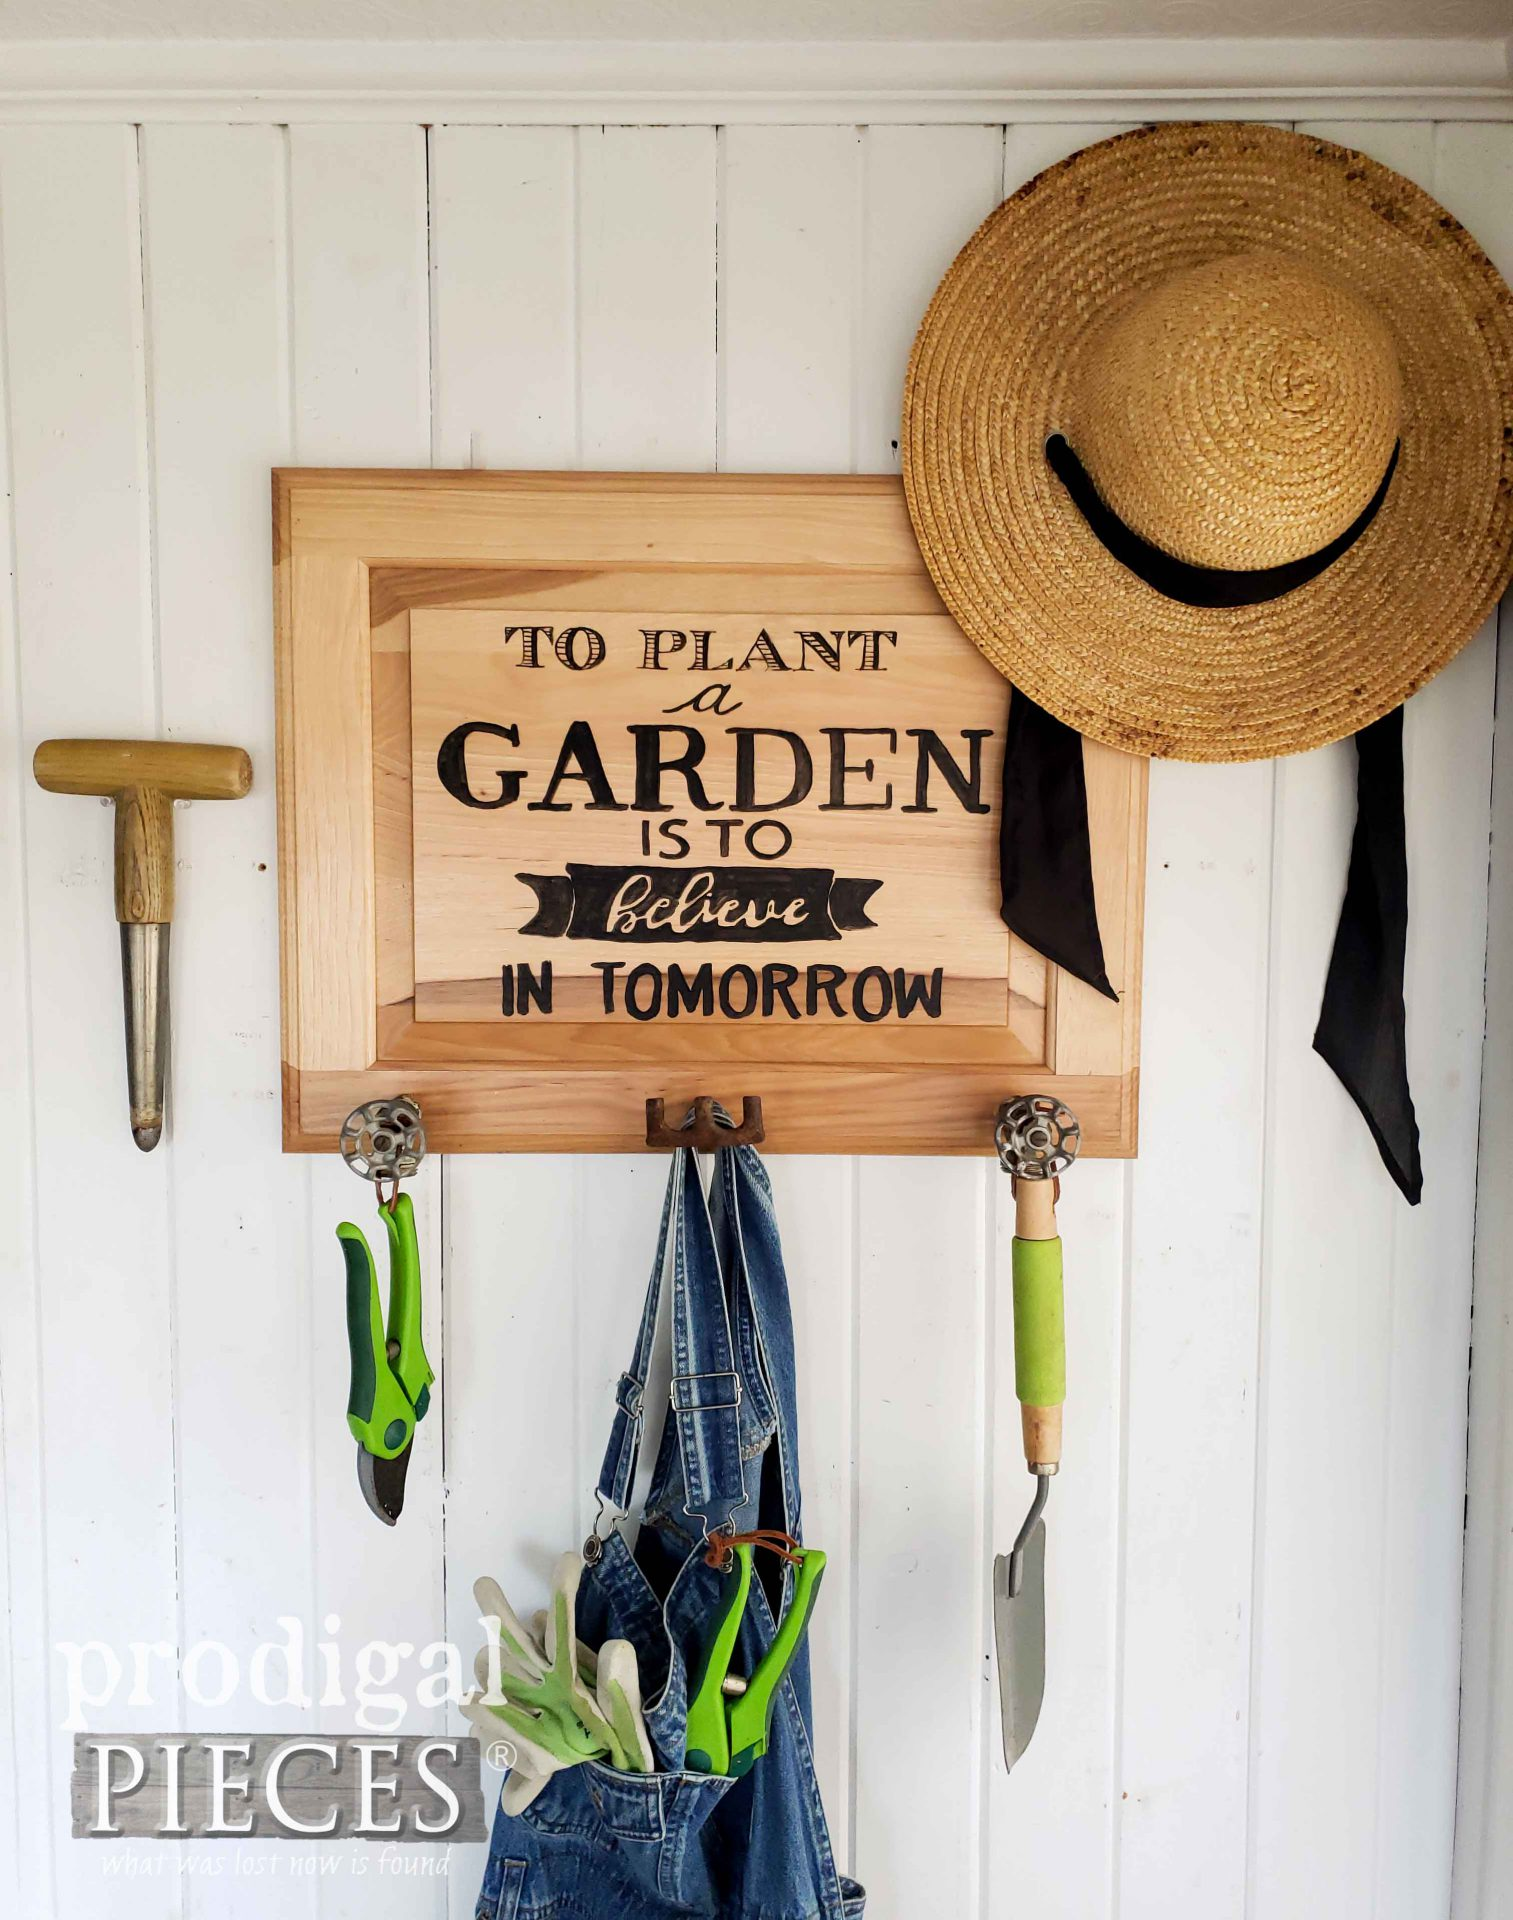 DIY Garden Sign Coat Rack from Upcycled Cupboard Door by Larissa of Prodigal Pieces | prodigalpieces.com #prodigalpieces #farmhouse #garden #diy #upcycled #art #home #homedecor